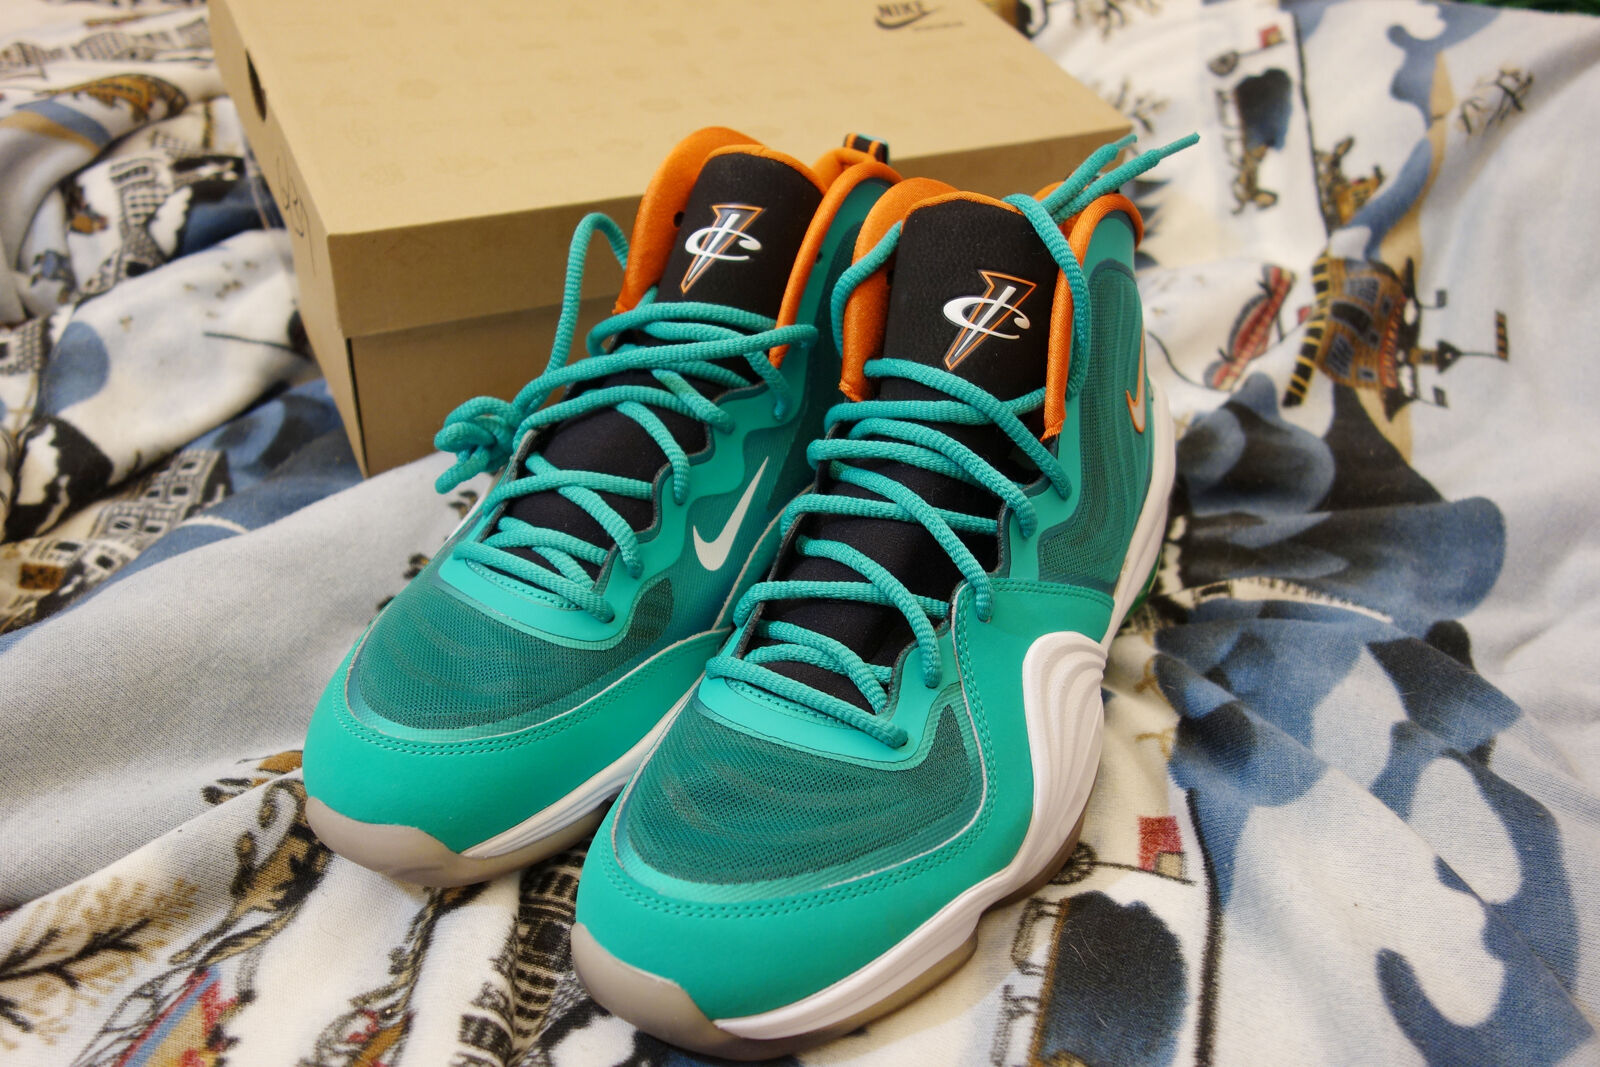 DS NIKE AIR PENNY V 5 GREEN WHITE MIAMI DOLPHINS 537331-300 SZ 10.5